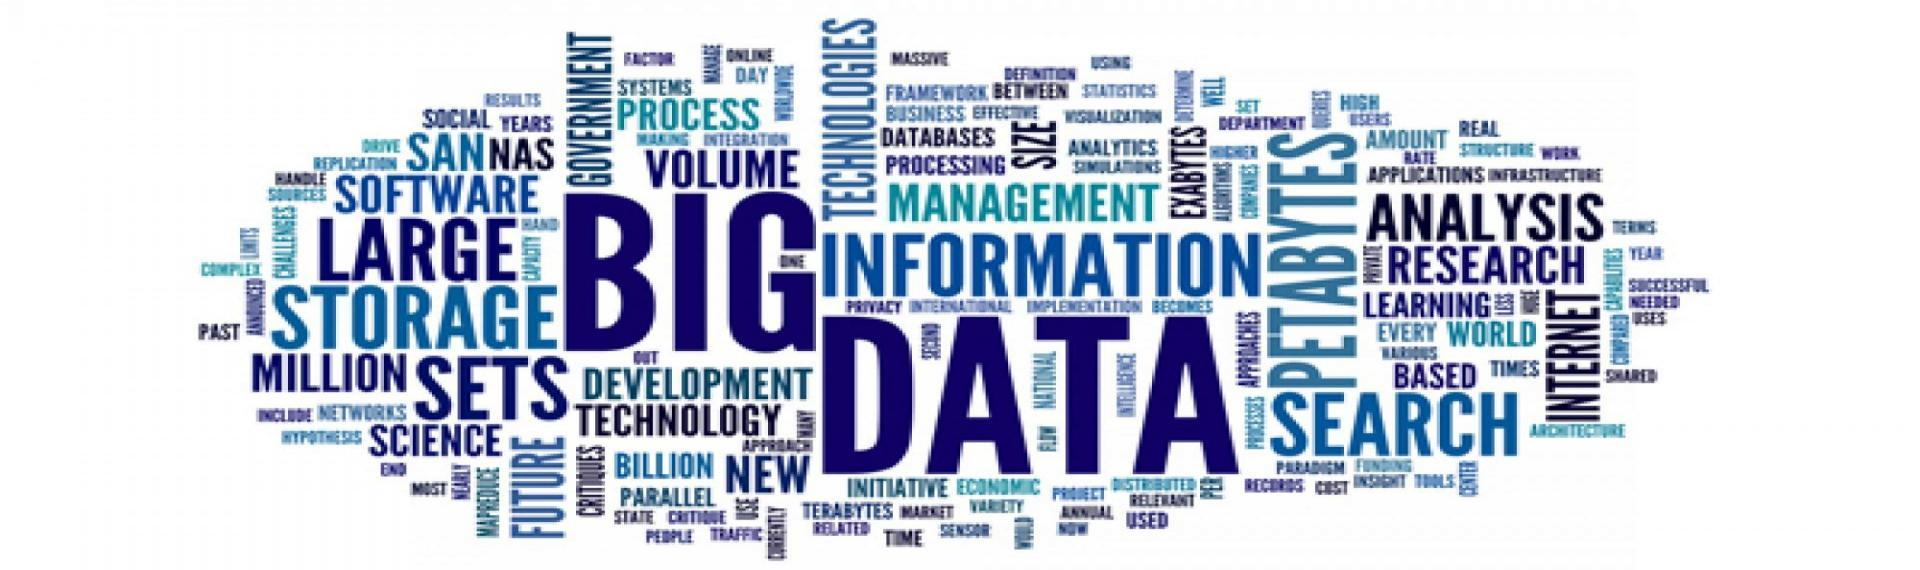 Image of Big Data